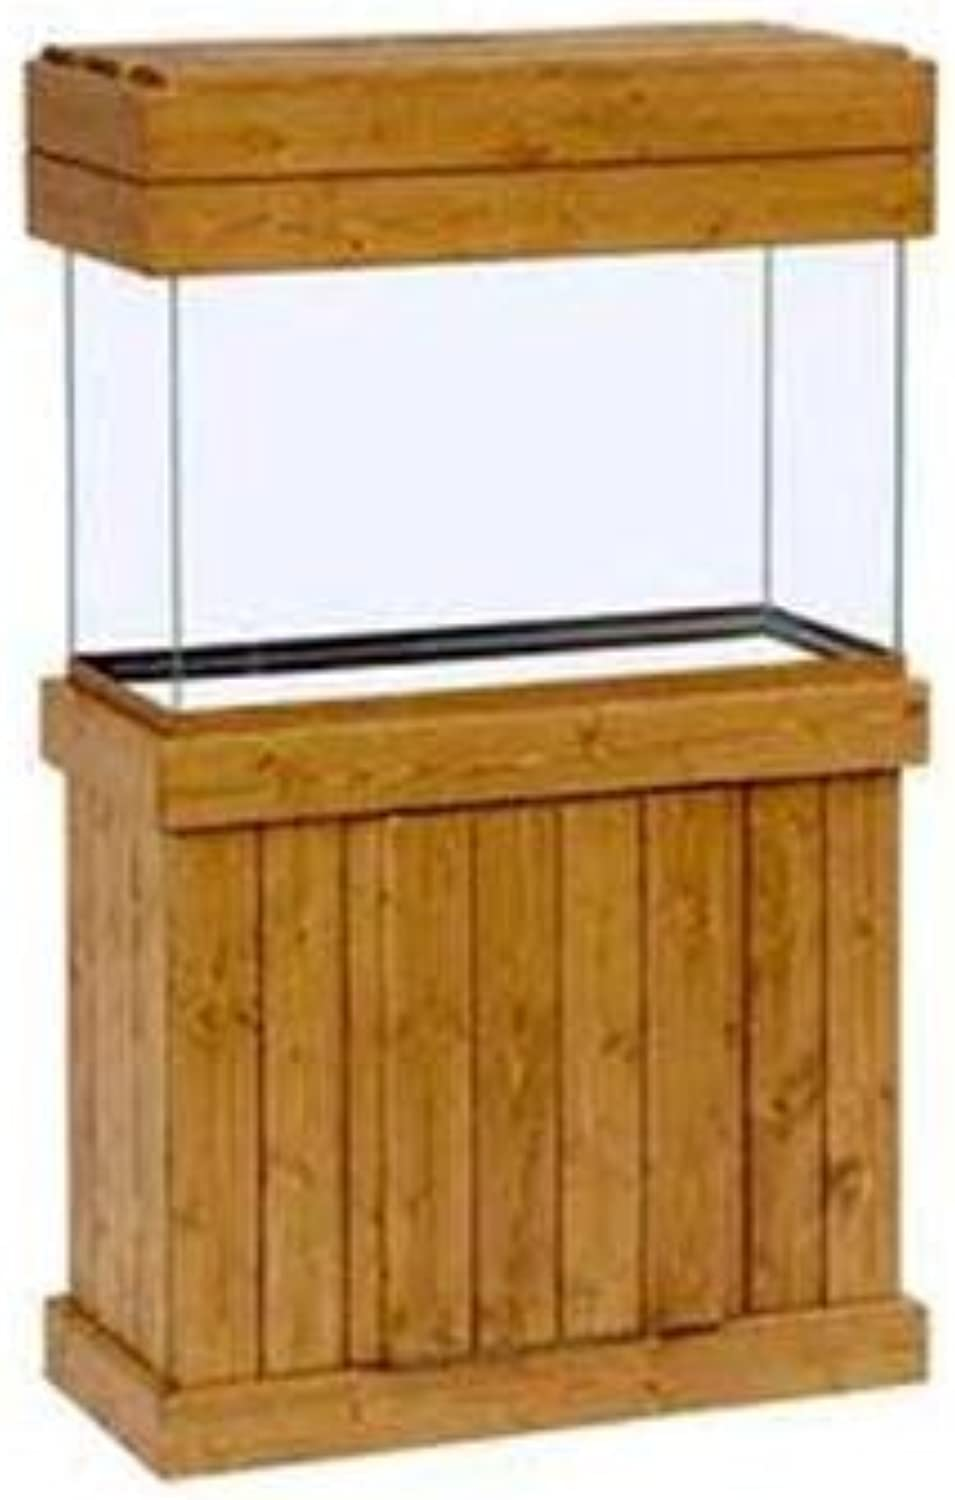 Perfecto Manufacturing Apf67362 Majesty Stand For Aquarium, 36 By 12Inch, Oak